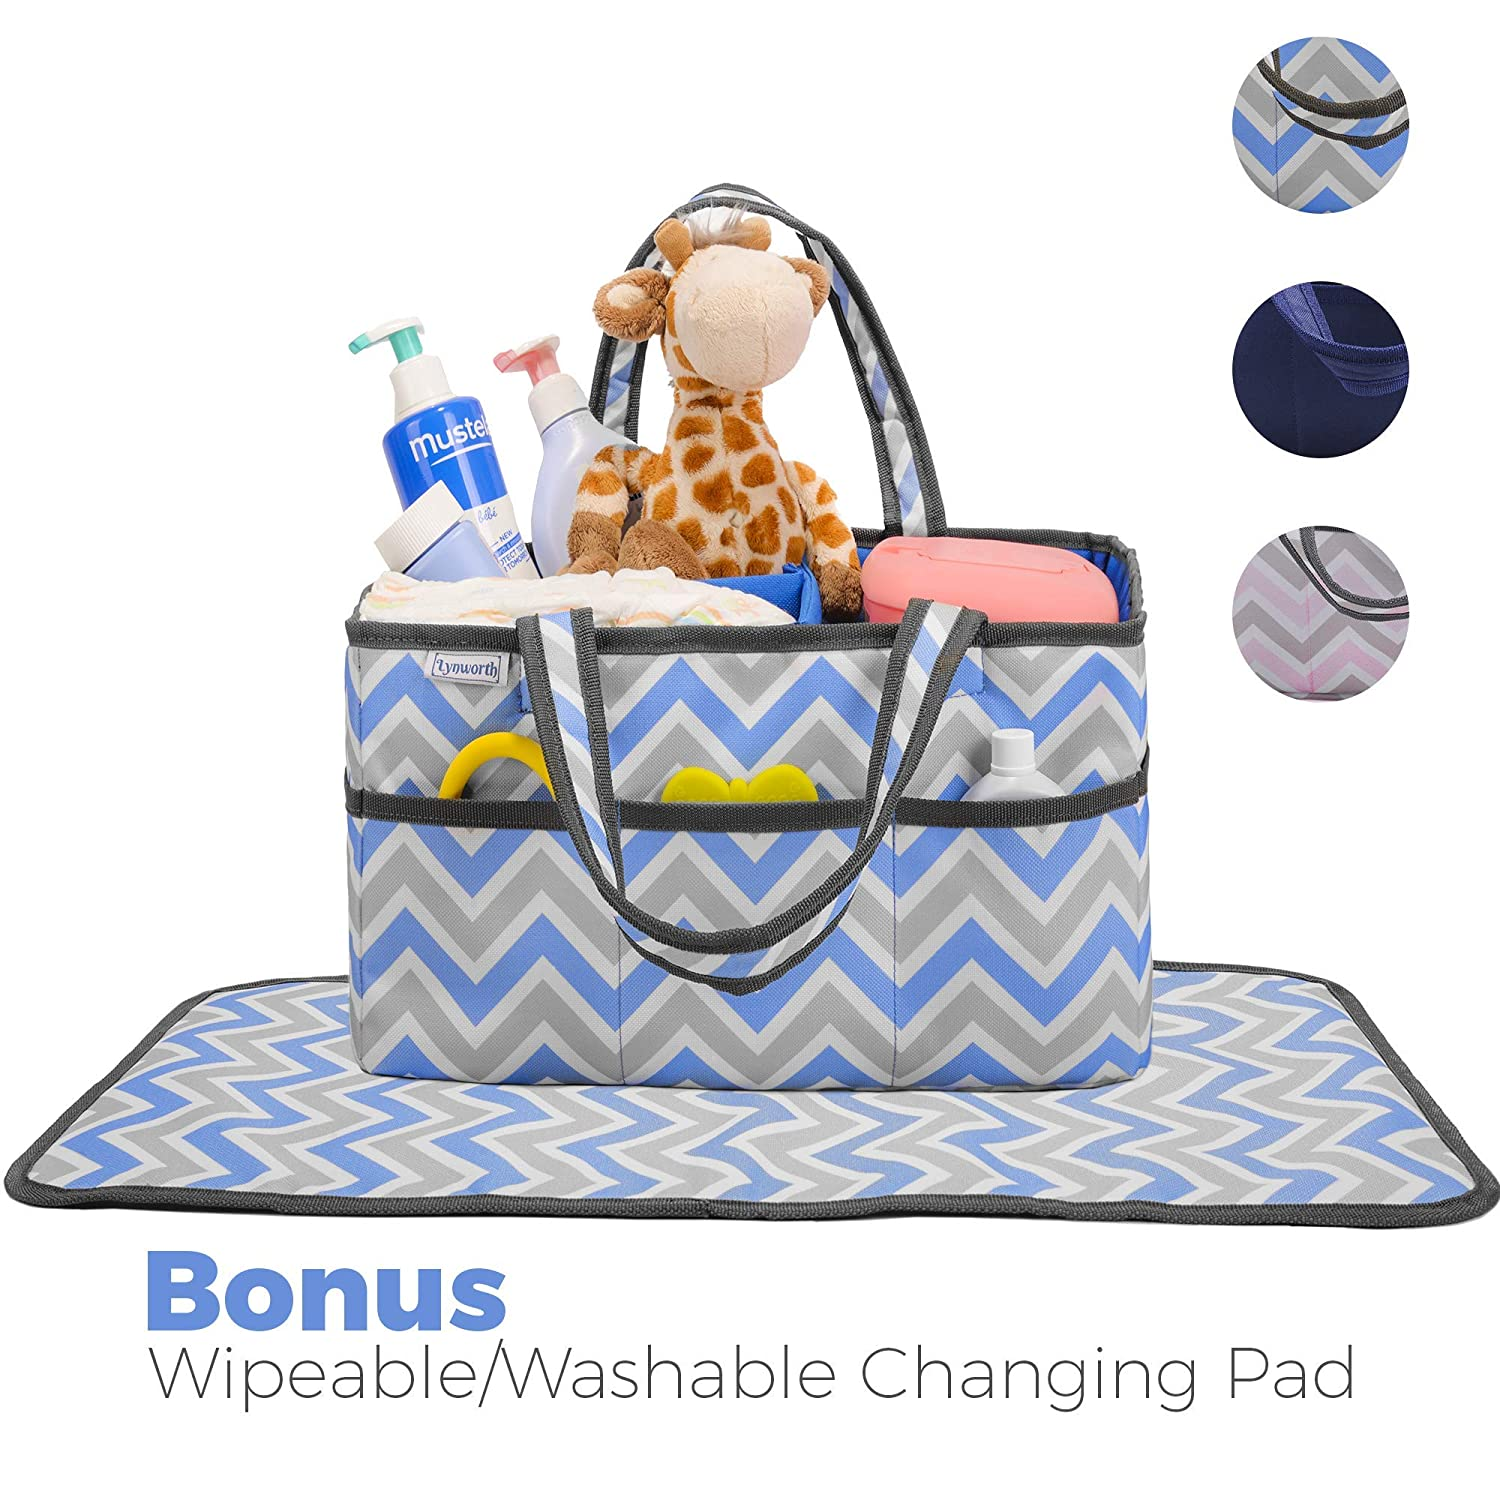 Diaper Caddy, Nursery Organizer: Pink and Grey Chevron, Best Portable Washable Diaper Caddy Organizer with Large Storage Space. Free Changing Pad (Pink, Large) Lynworth